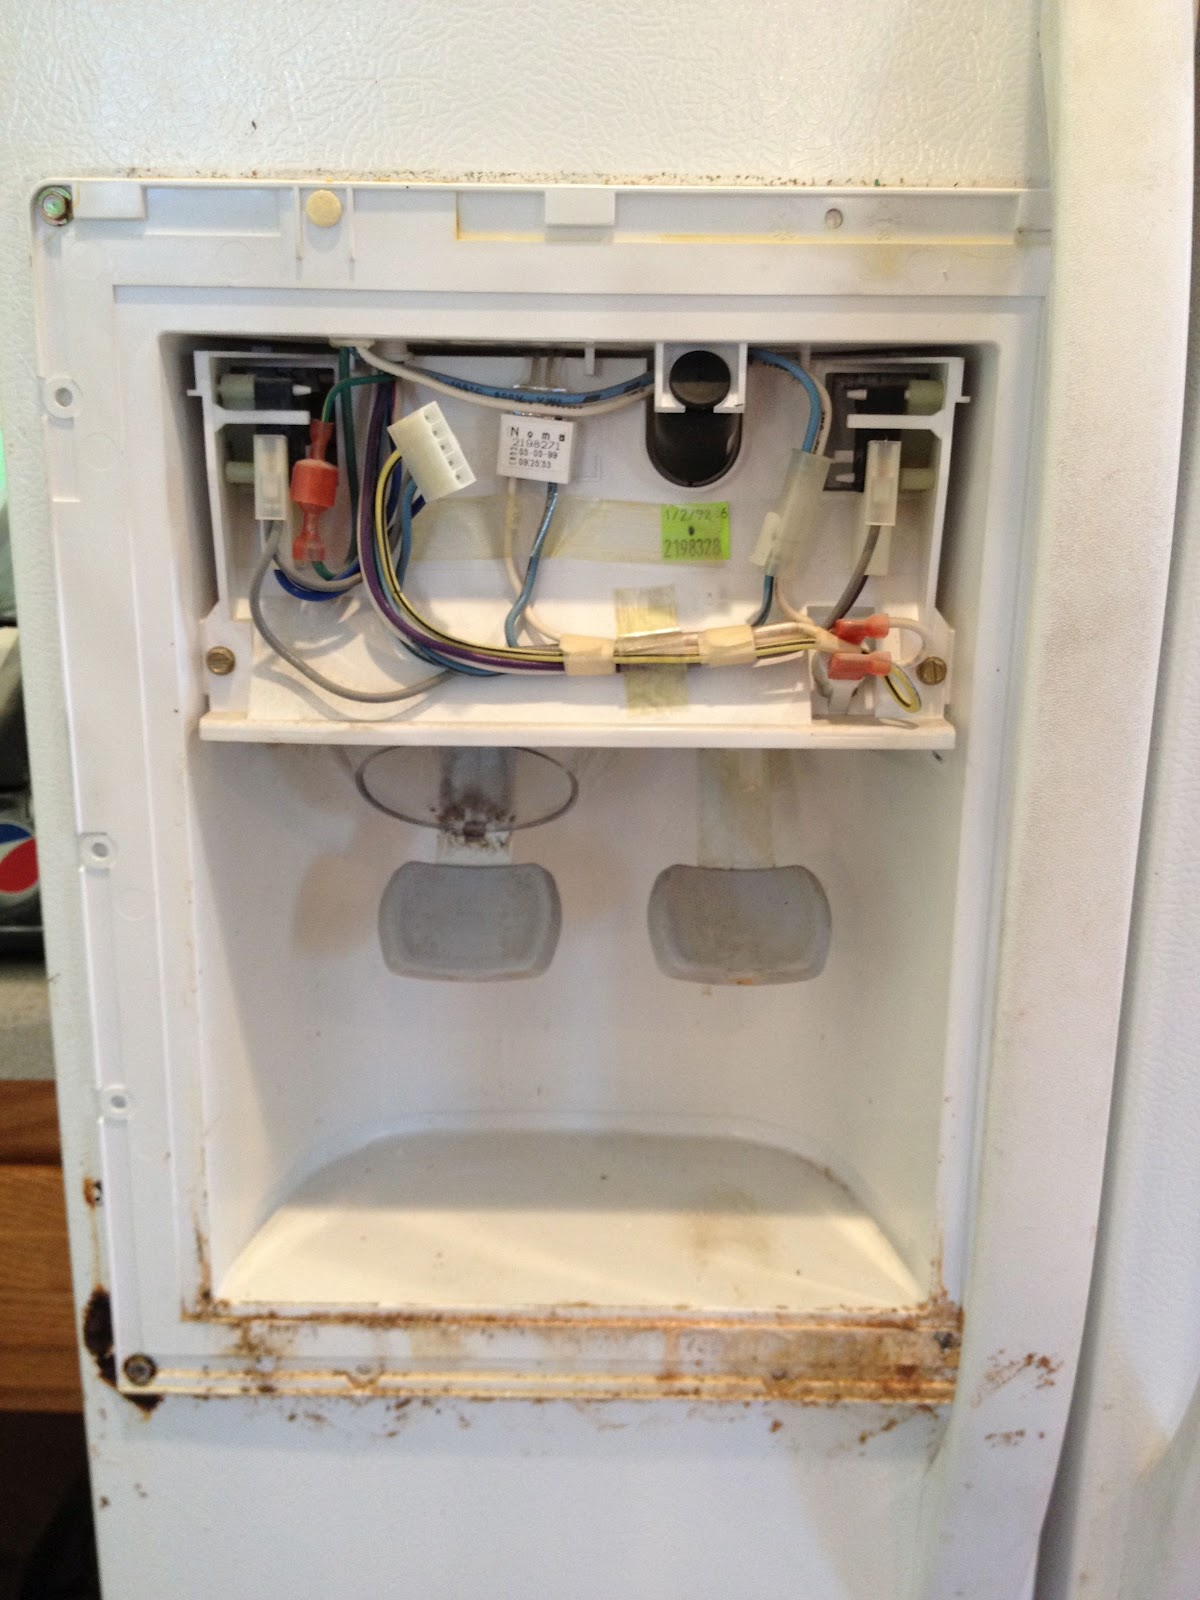 How To Repair The Seal On The Ice Dispenser Door On A